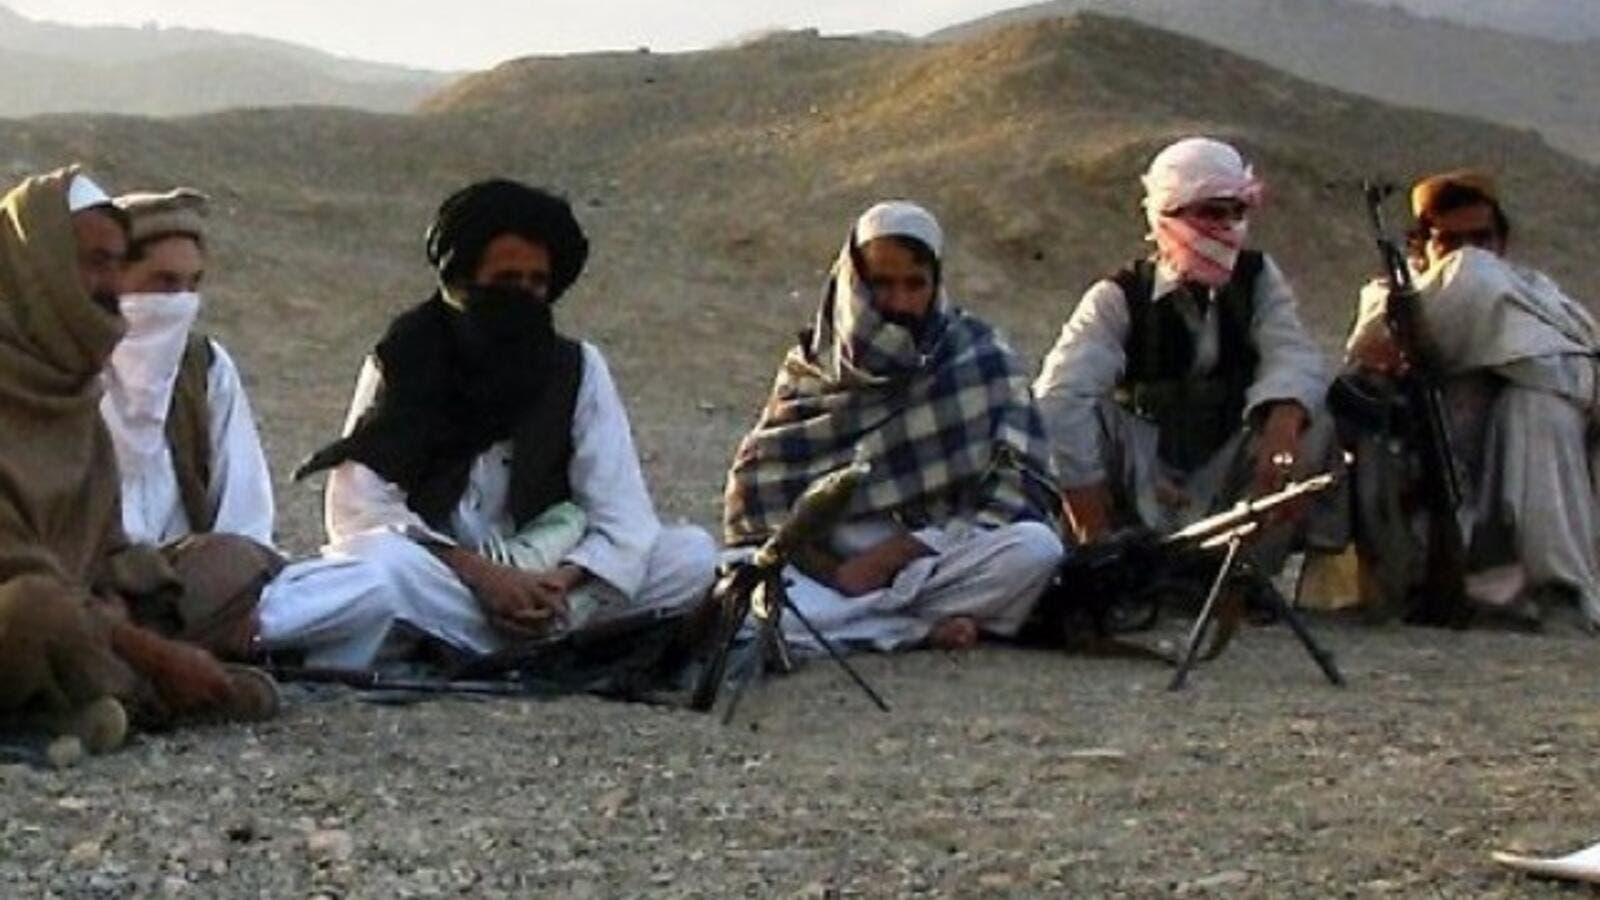 A file photo of Taliban militants in Afghanistan. (AFP/File)